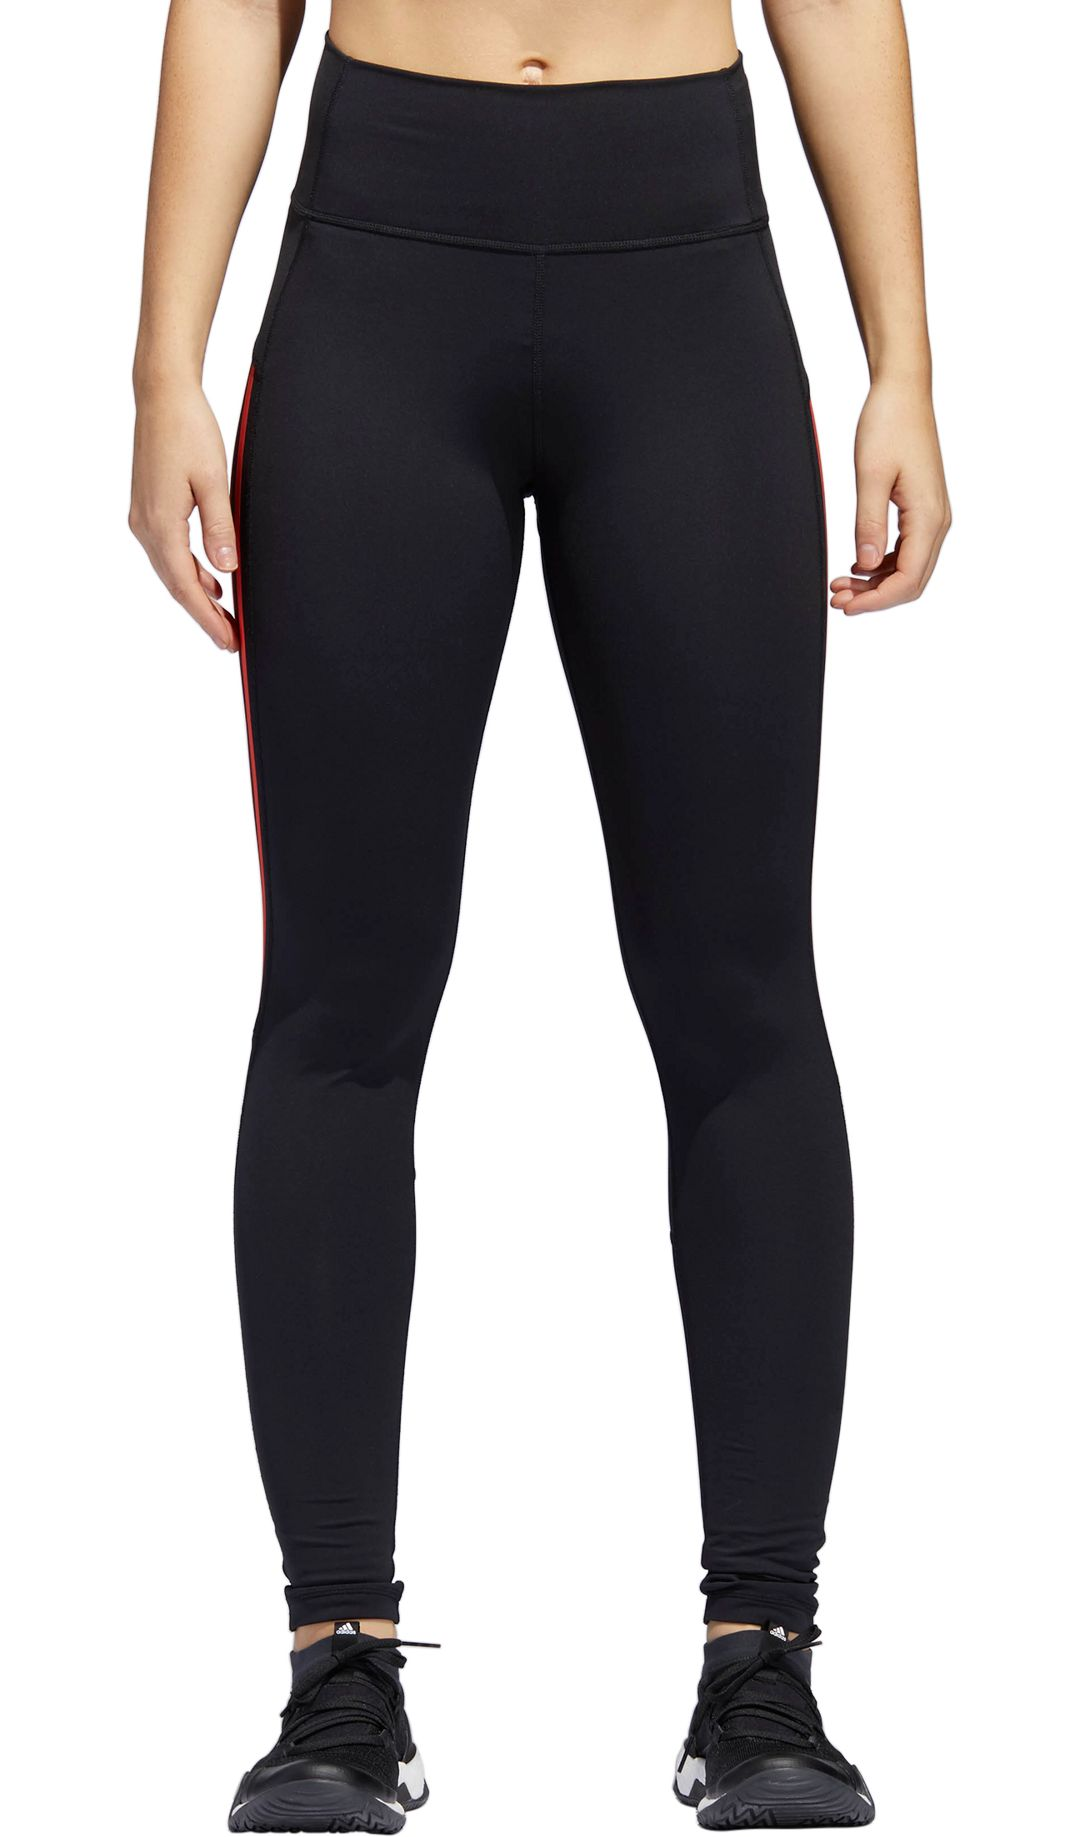 babfb13a22d948 adidas Women's Believe This 3-Stripe 7/8 Training Tights | DICK'S ...